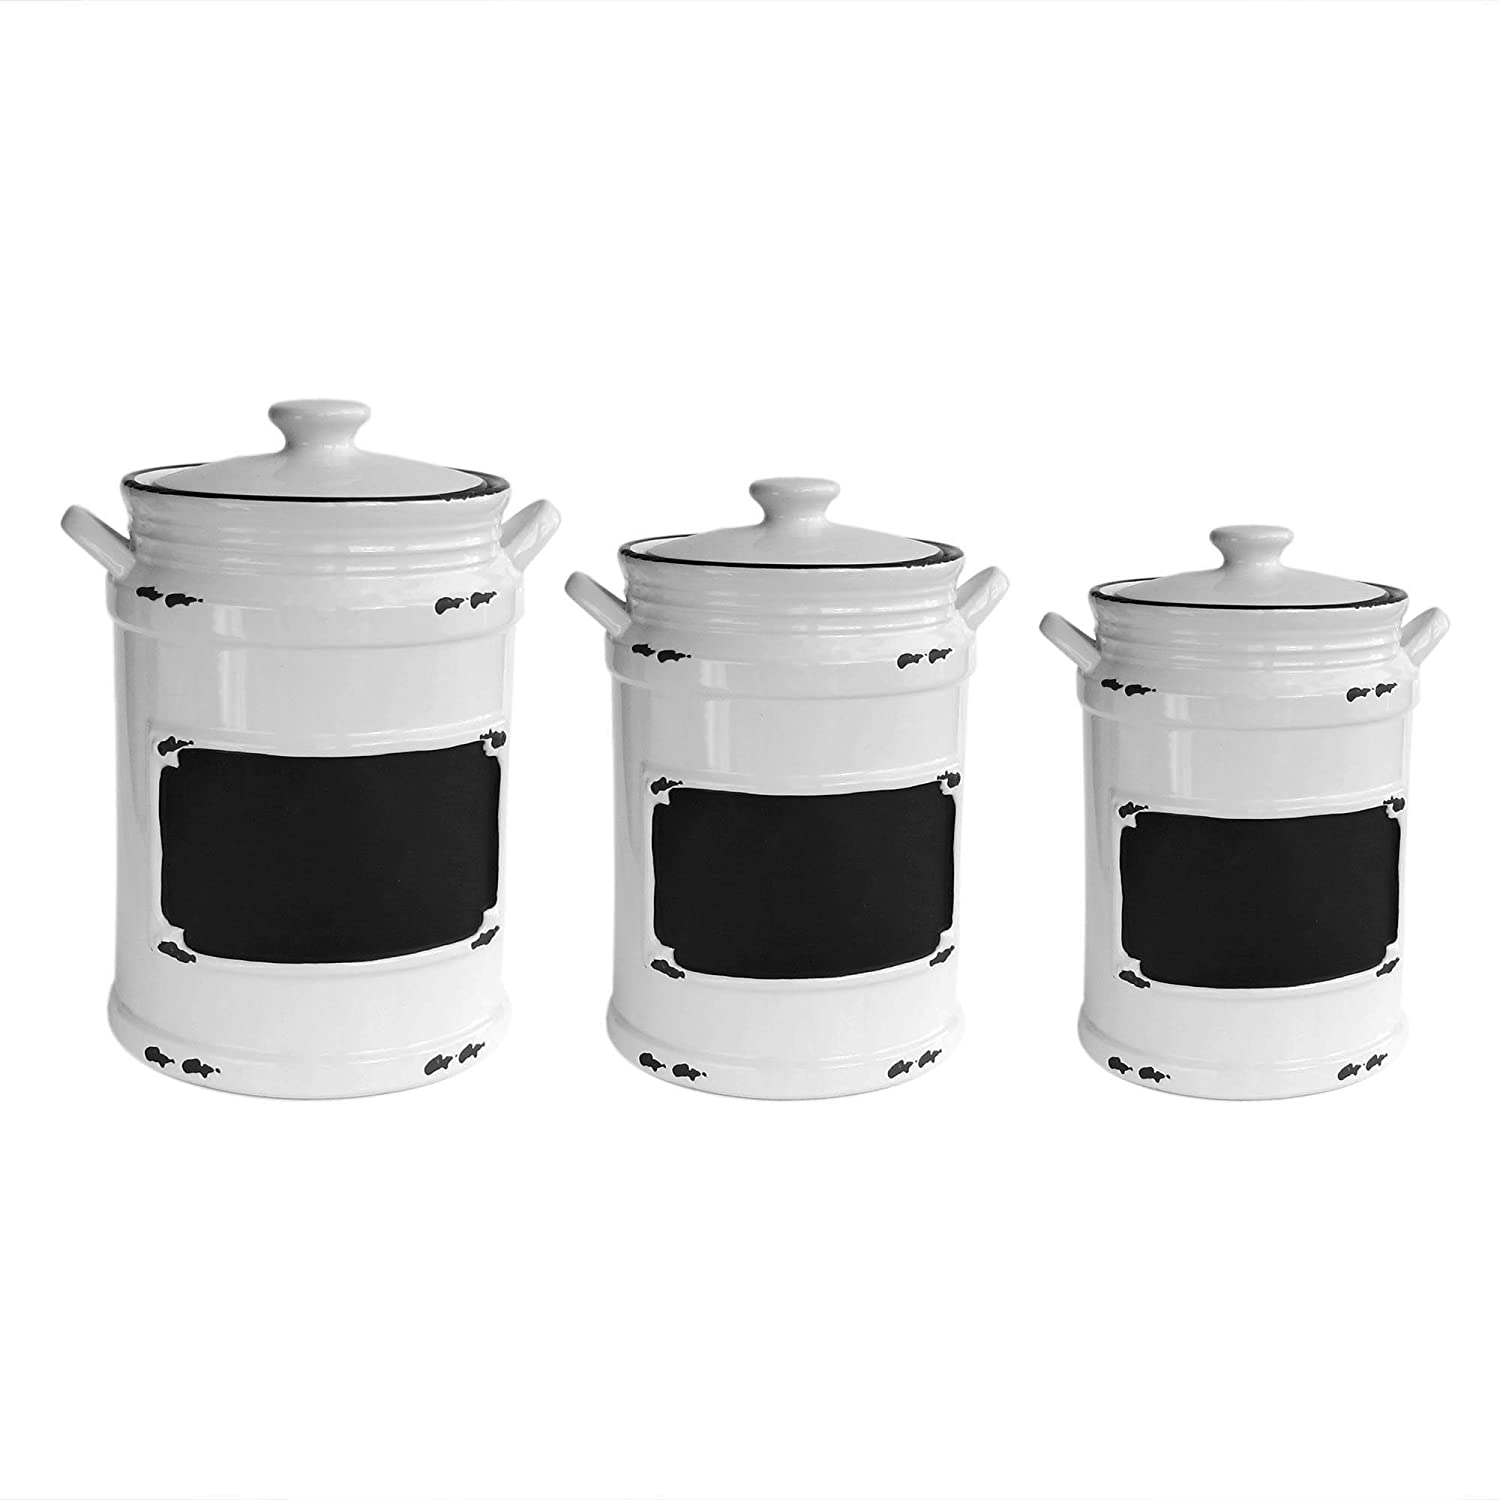 amazon com american atelier vintage 3 piece canister set black amazon com american atelier vintage 3 piece canister set black home kitchen